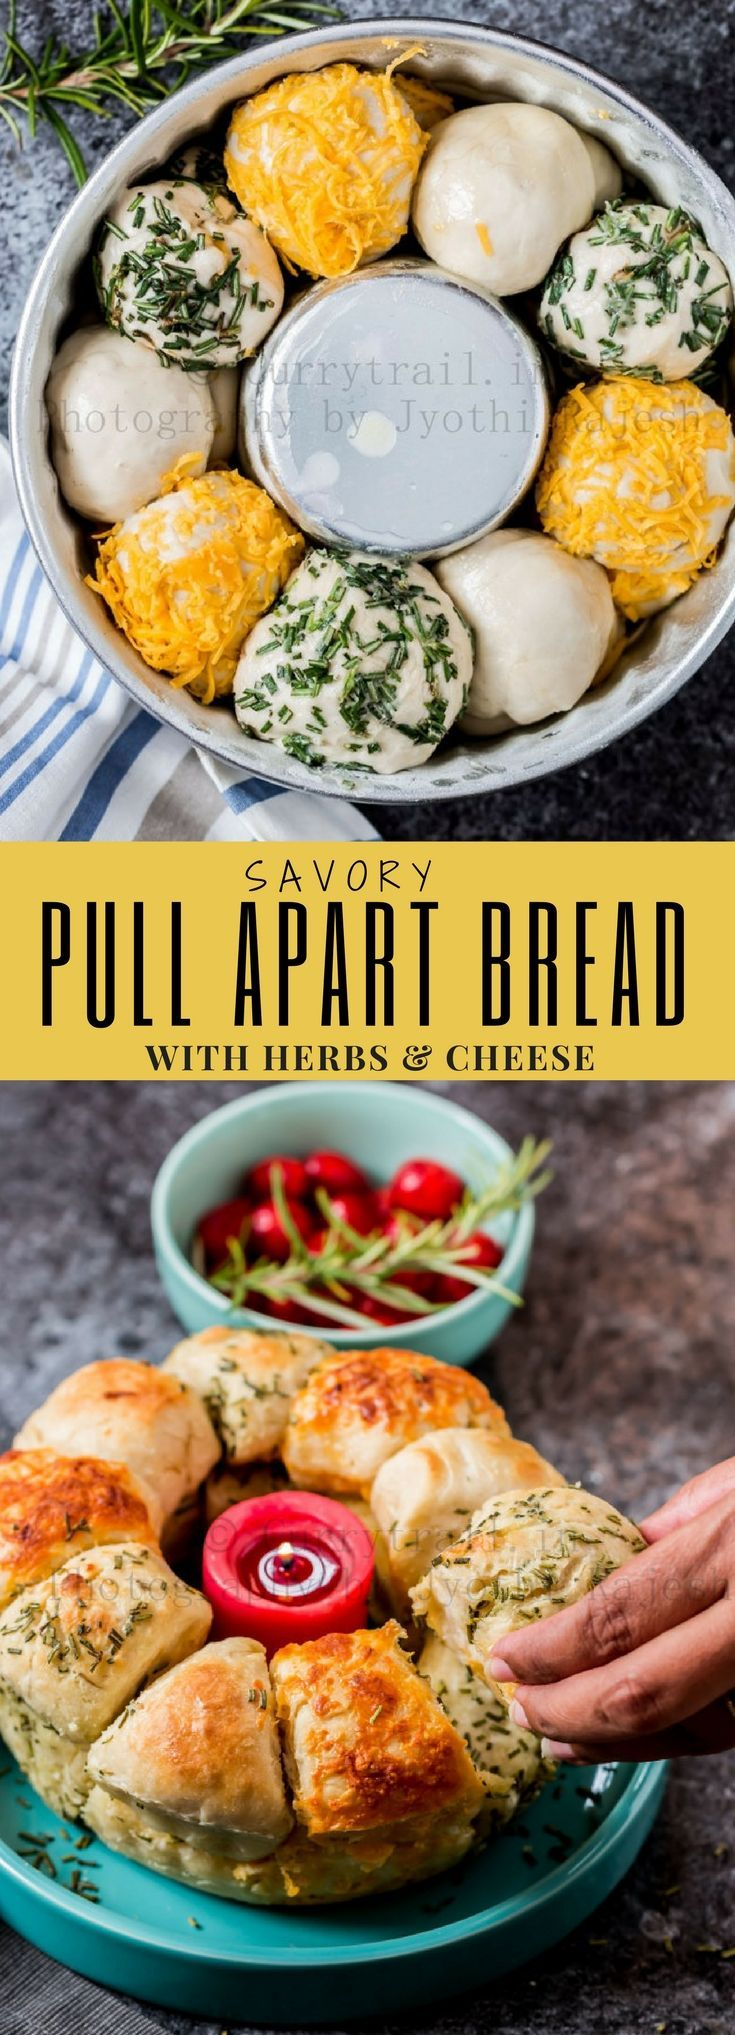 Make this savory cheese and herbs pull apart bread all from scratch. Garlic butter, fresh aromatic herbs, cheese - it can't get better than this. It's incredibly delicious and you can serve weeknight dinner along with soup.  #cheesypullaprtbread #garlicpullapartbread